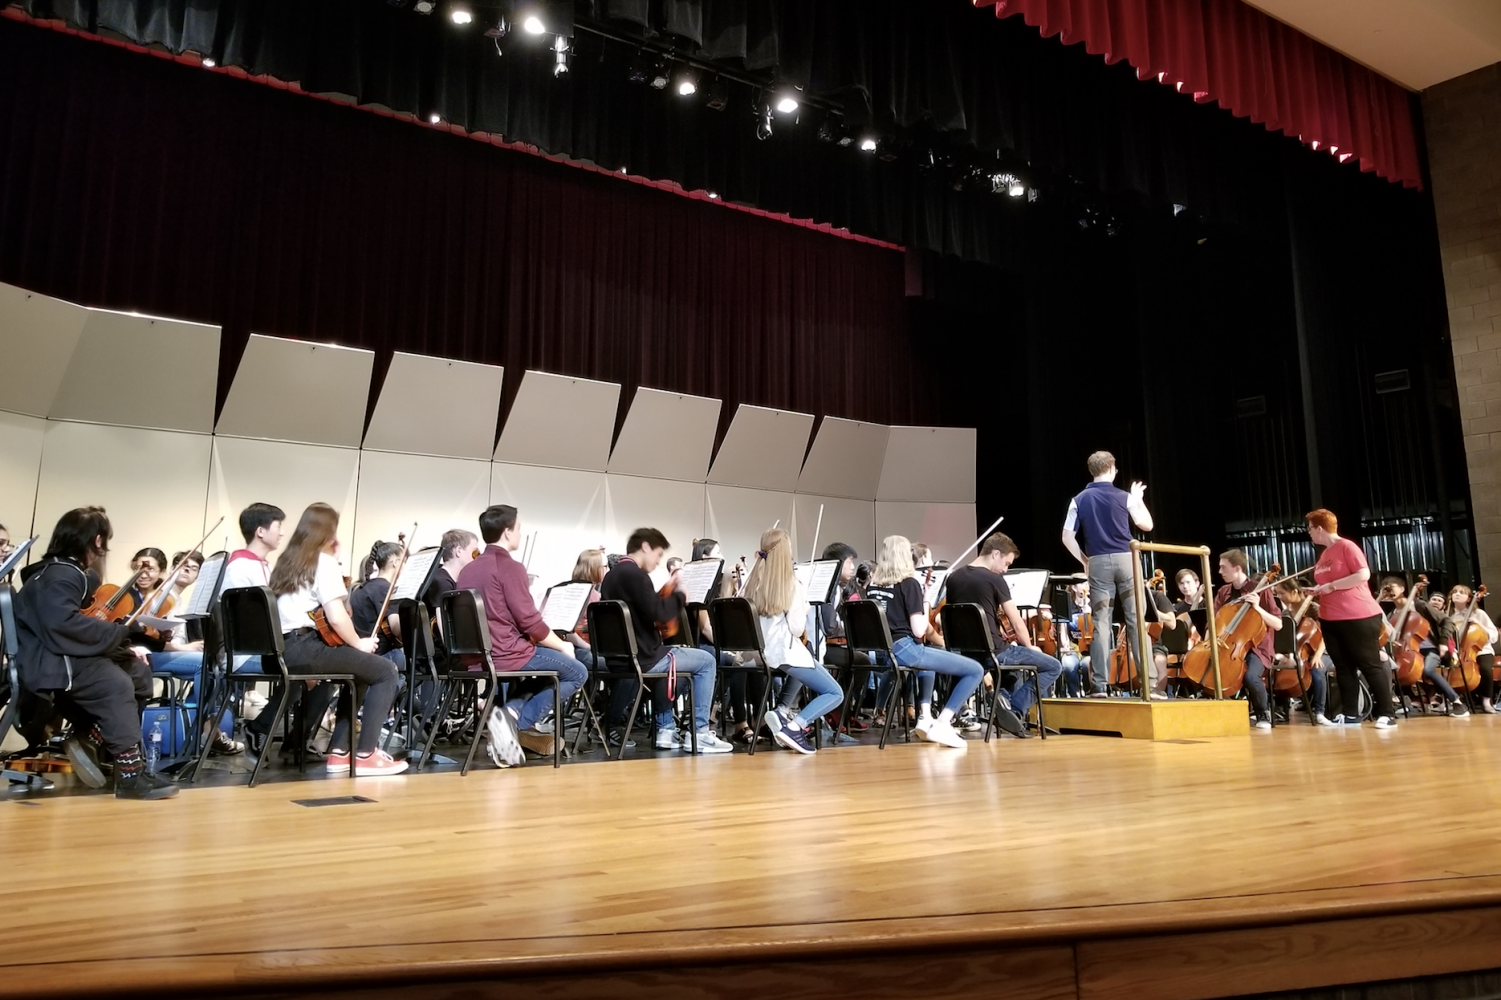 Redhawk orchestra students sit on stage in the auditorium along with orchestra students from Conway High School in Conway, AR. Conway director prepares to conduct the combined orchestra as campus orchestra director Julie Blackstock looks on.